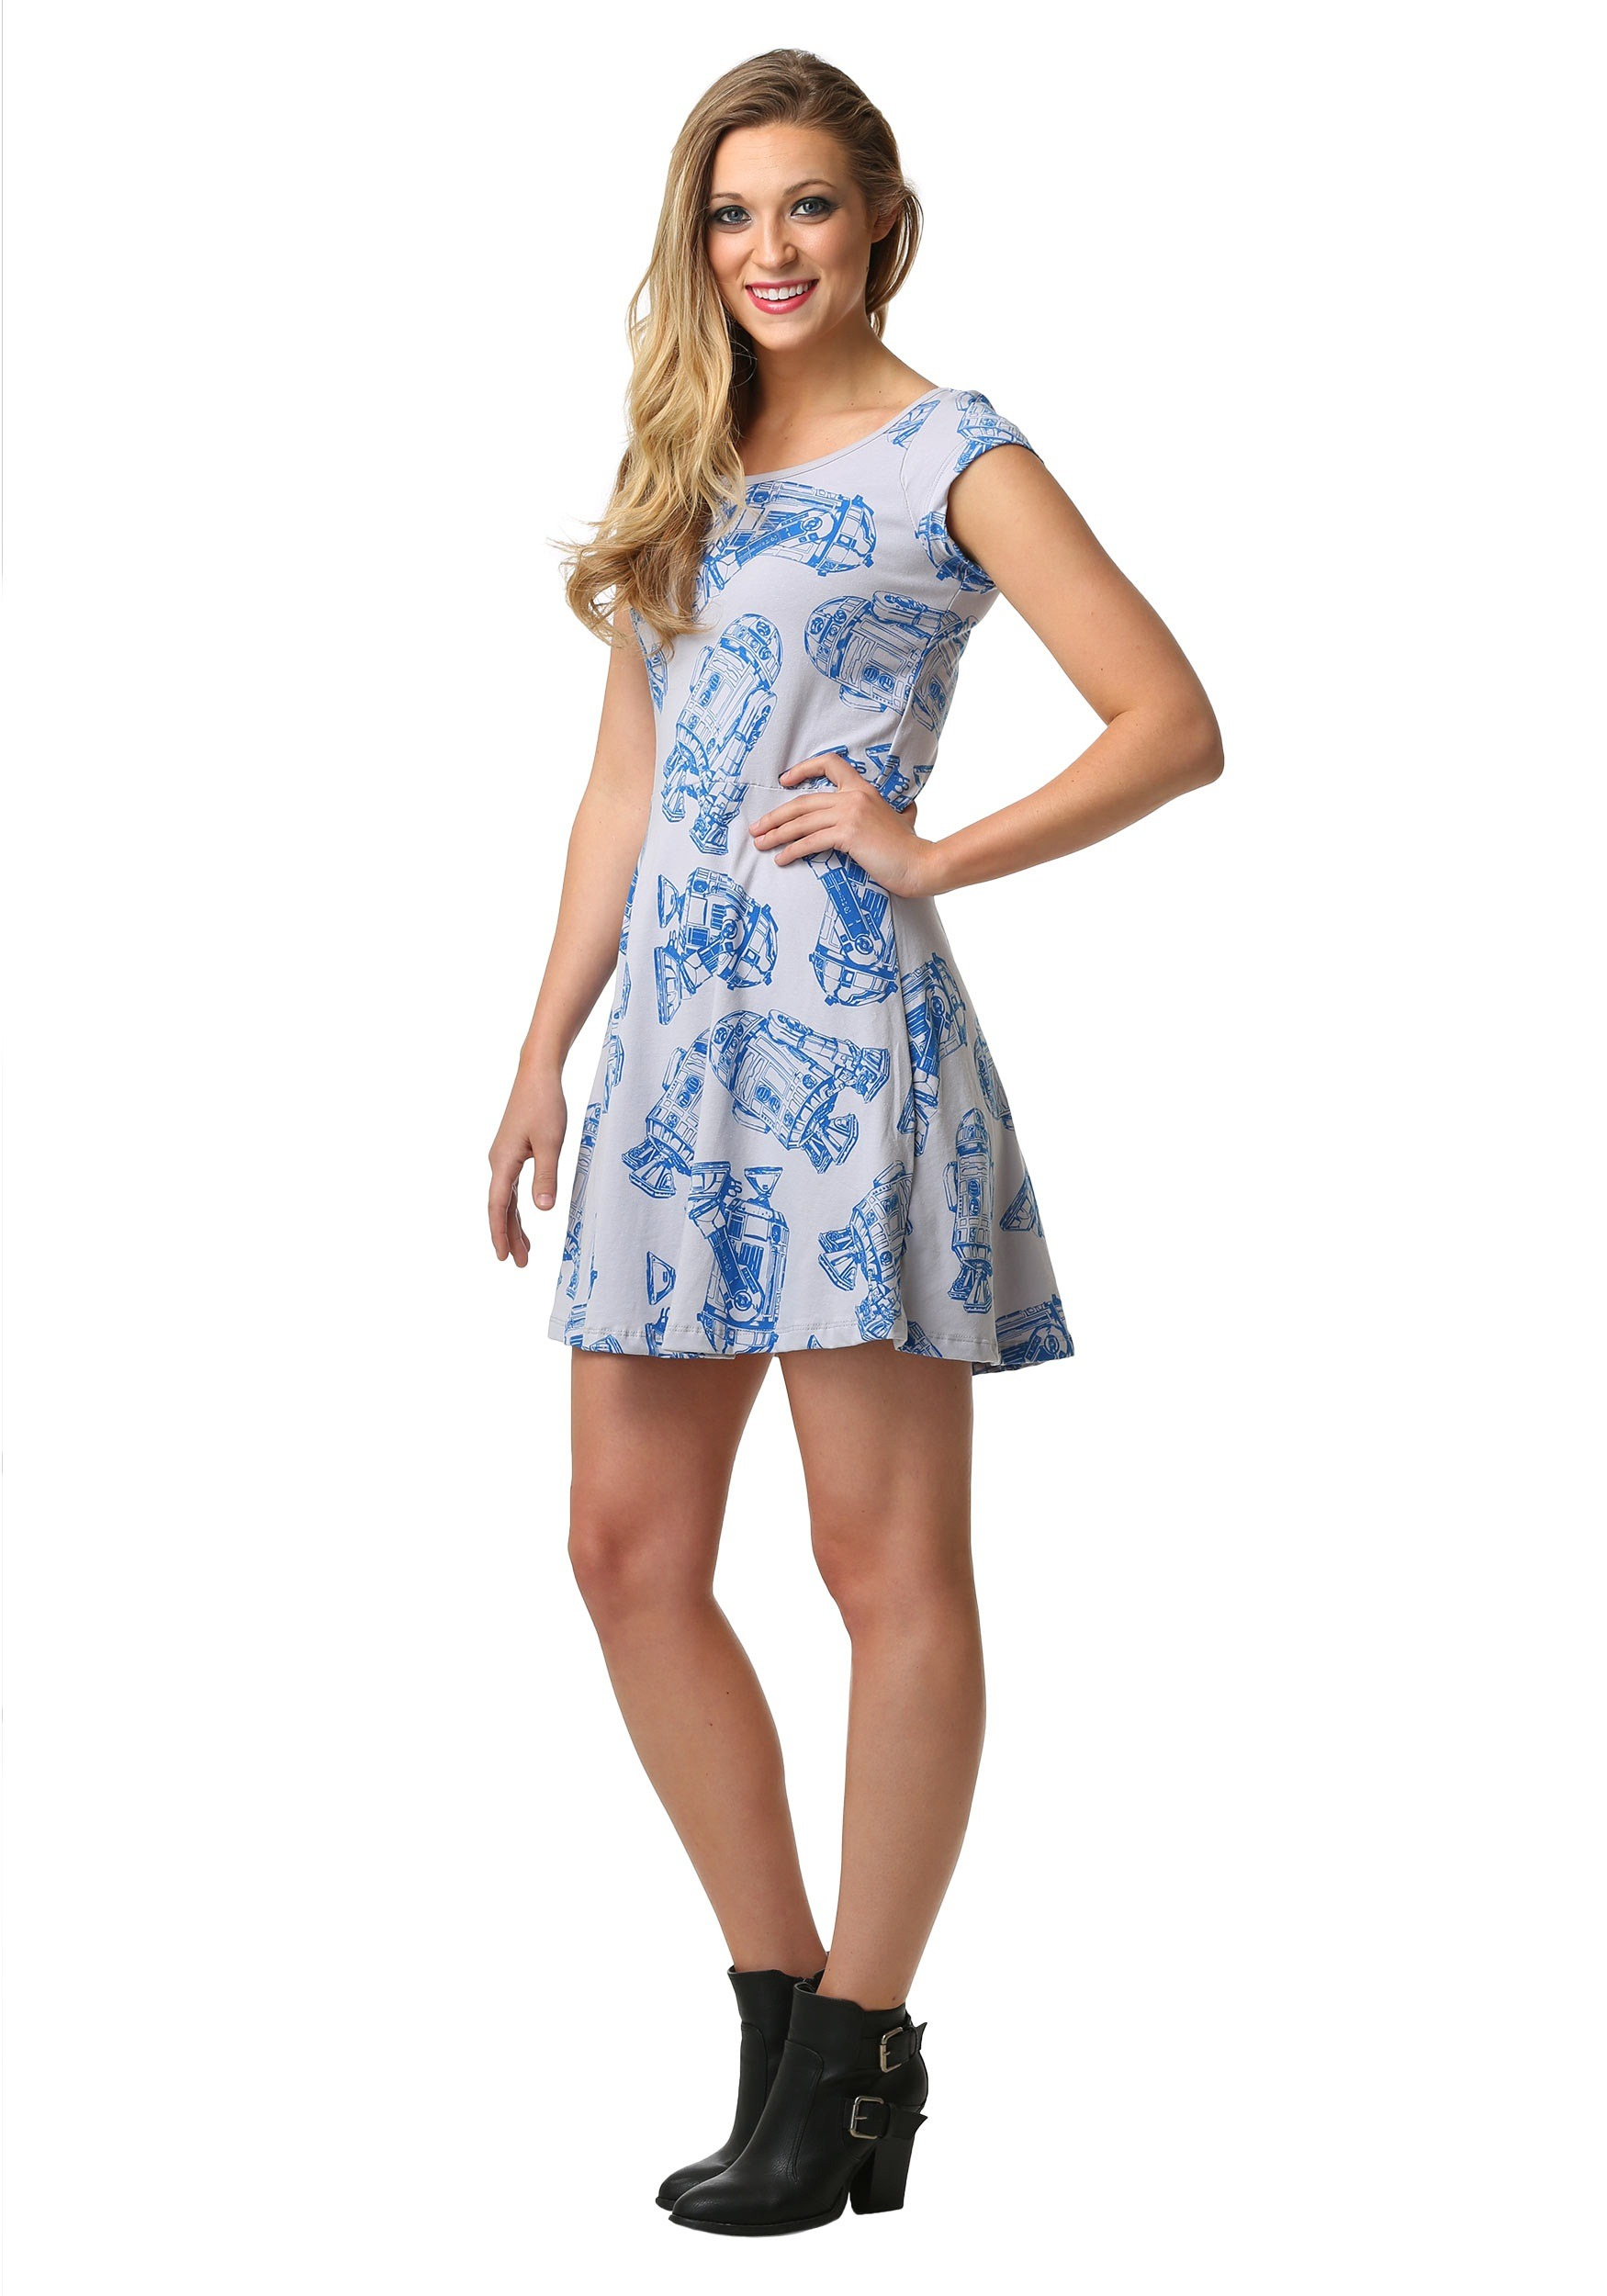 3db6090e1c Star Wars R2D2 All-Over Print Skater Dress